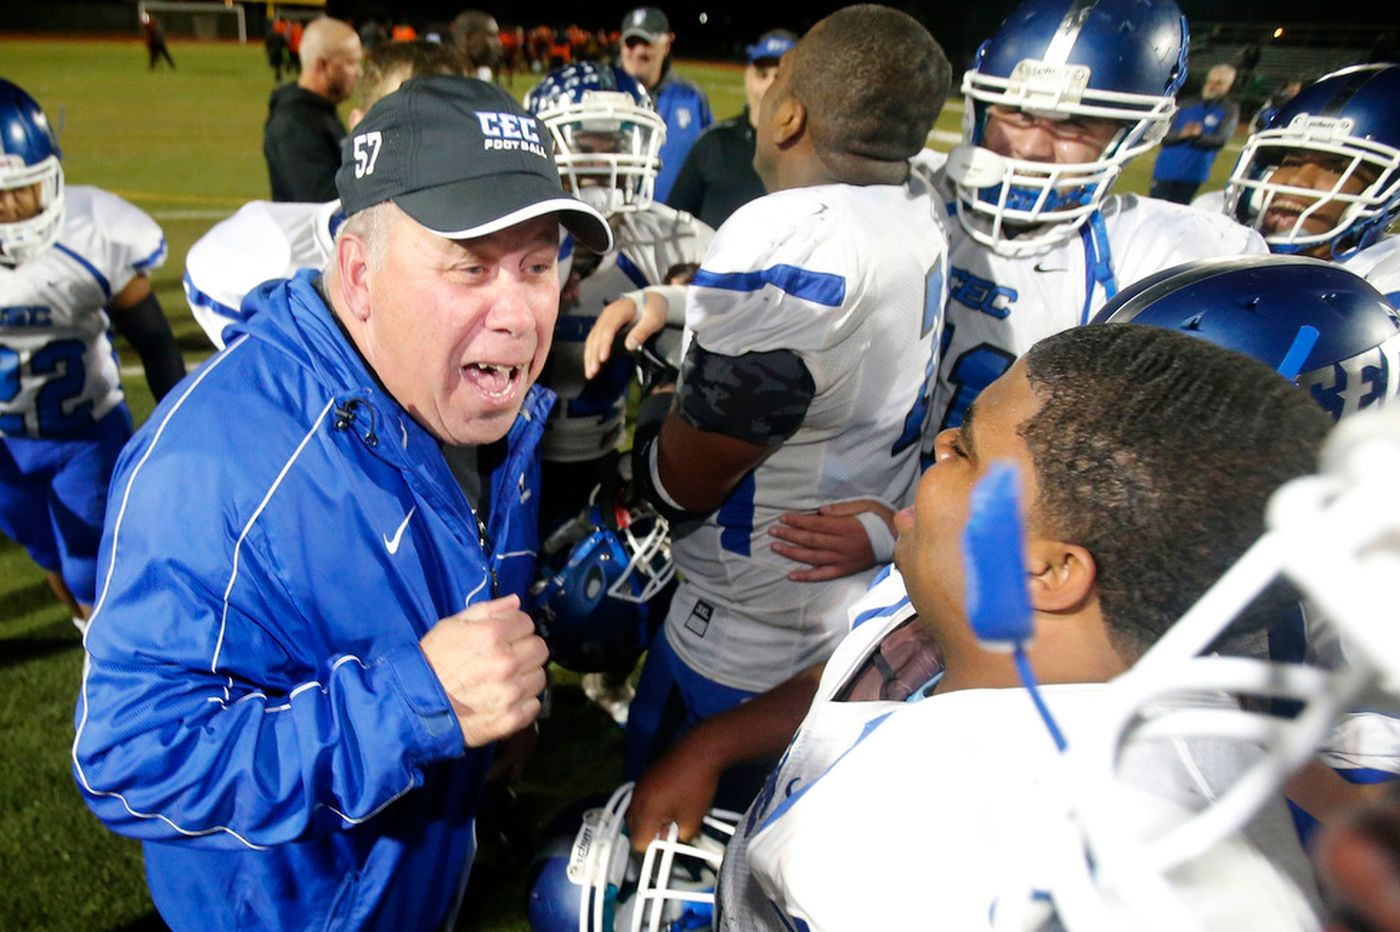 Conwell-Egan, Kensington and Olney football coaches chime in on New Jersey's new rule restricting contact during practices